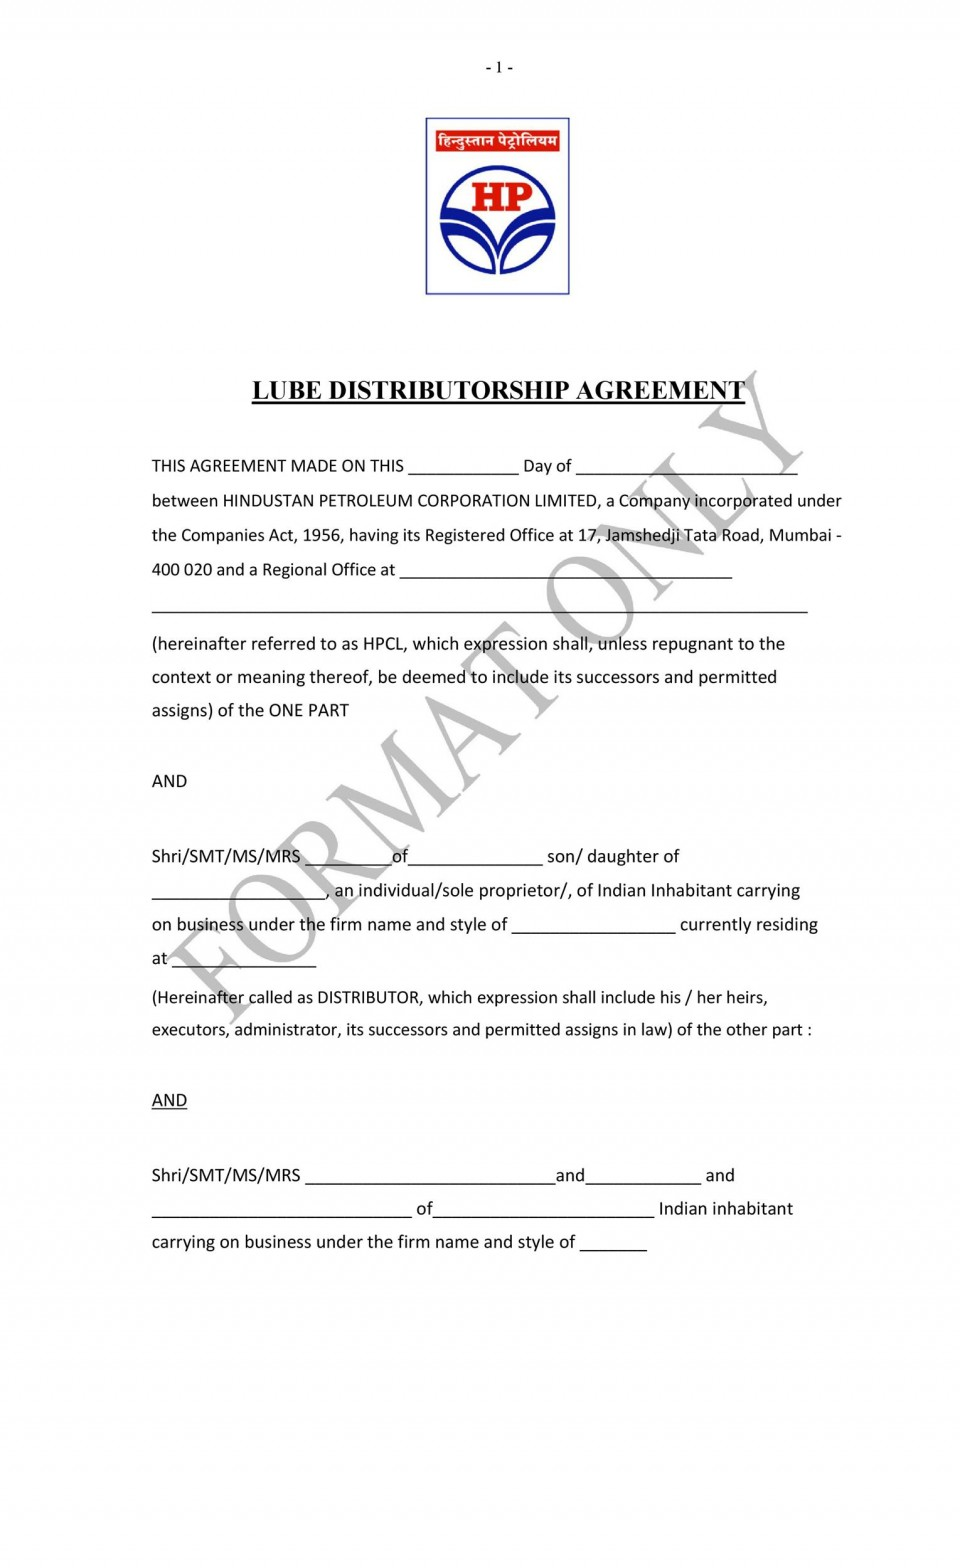 007 Incredible Exclusive Distribution Contract Template High Resolution  Sole Distributor Agreement Non Free960